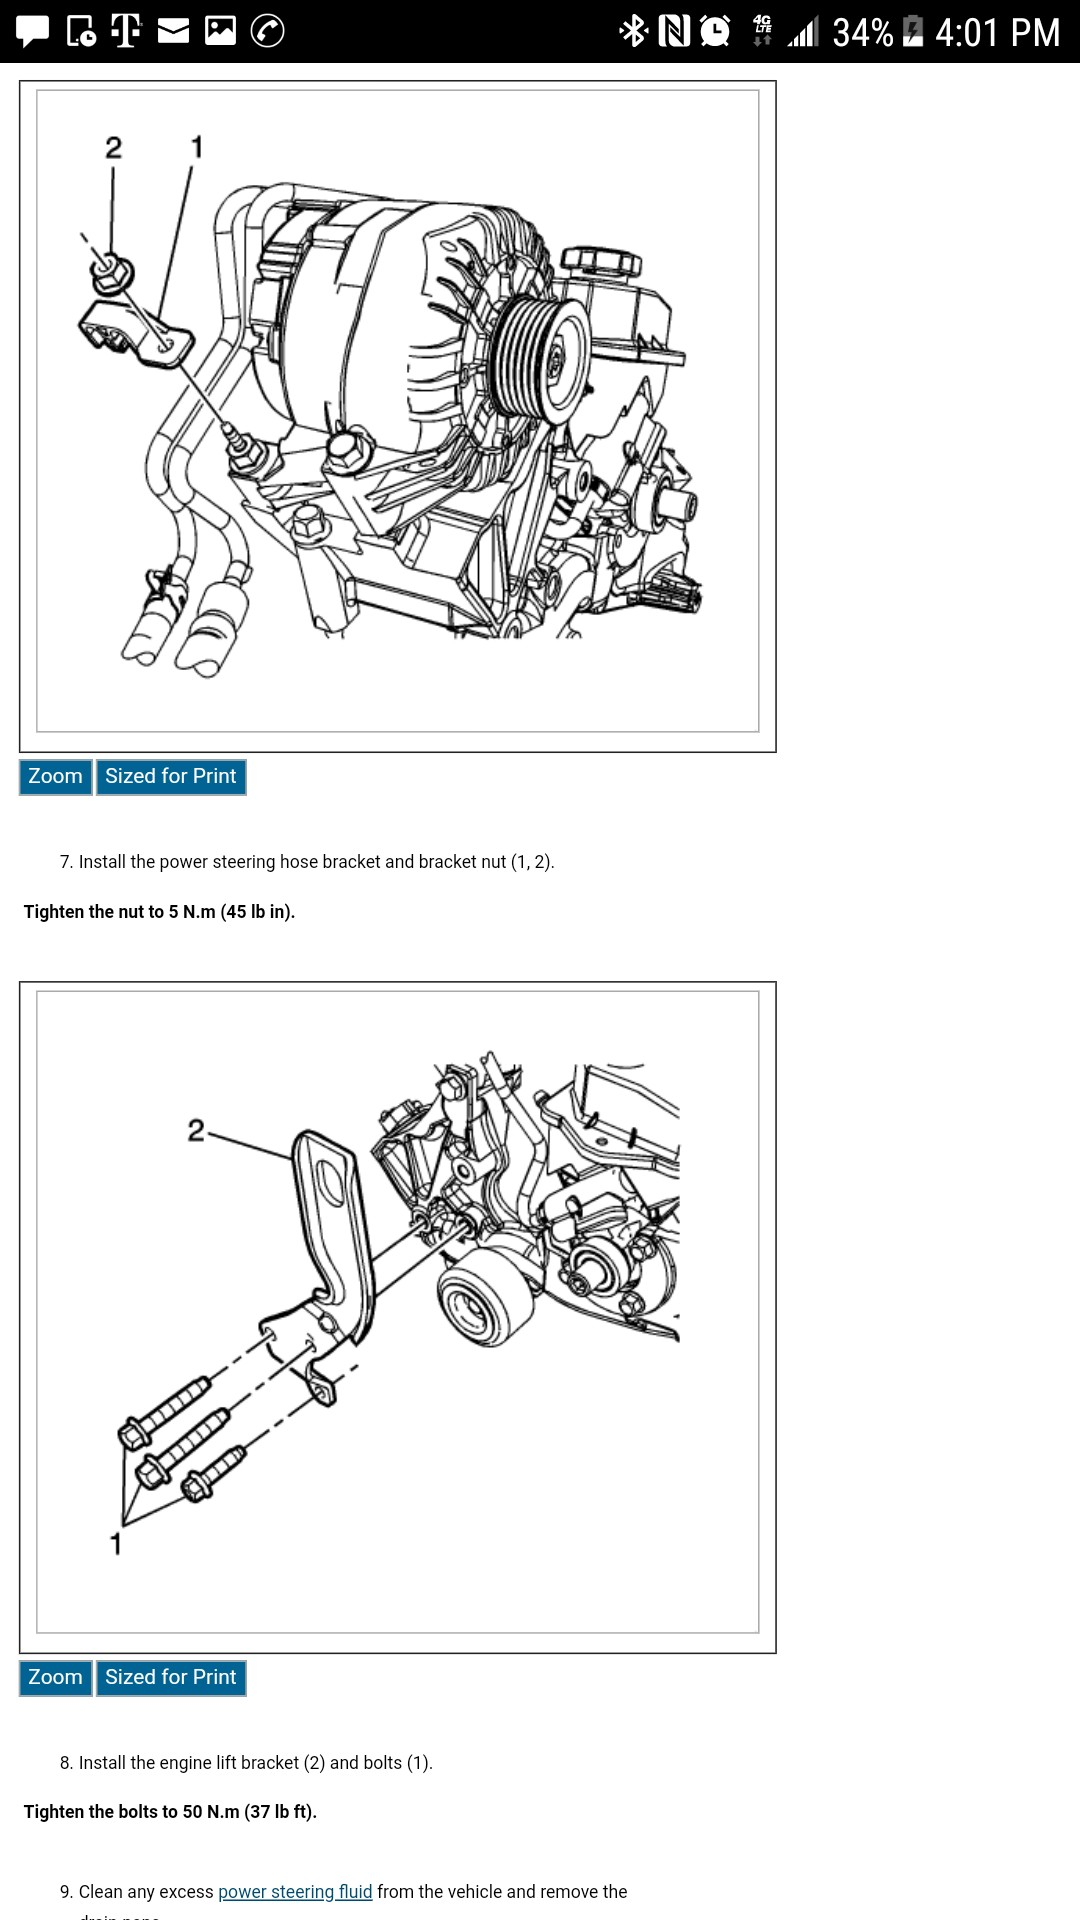 Power Steering Line Diagram I Am Trying to Install the Power Steering Hoses I Need Help with Of Power Steering Line Diagram